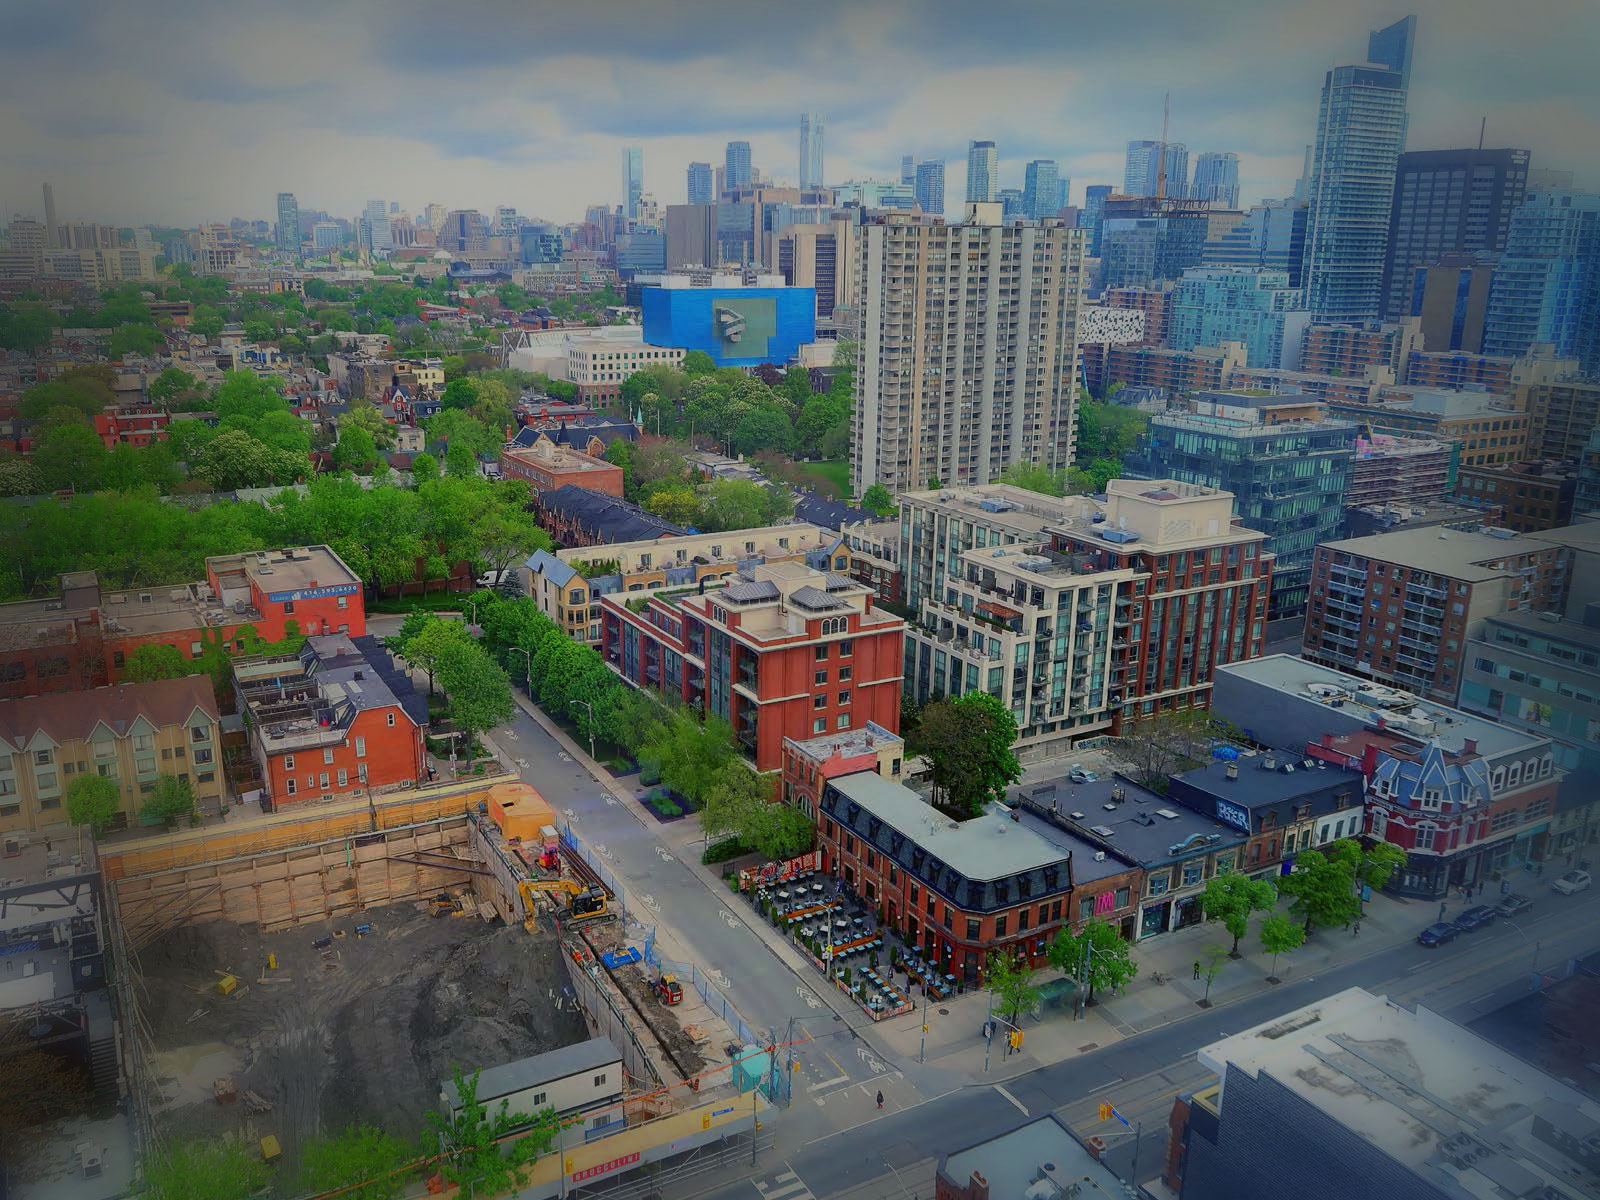 An aerial view of an urban neighbourhood.